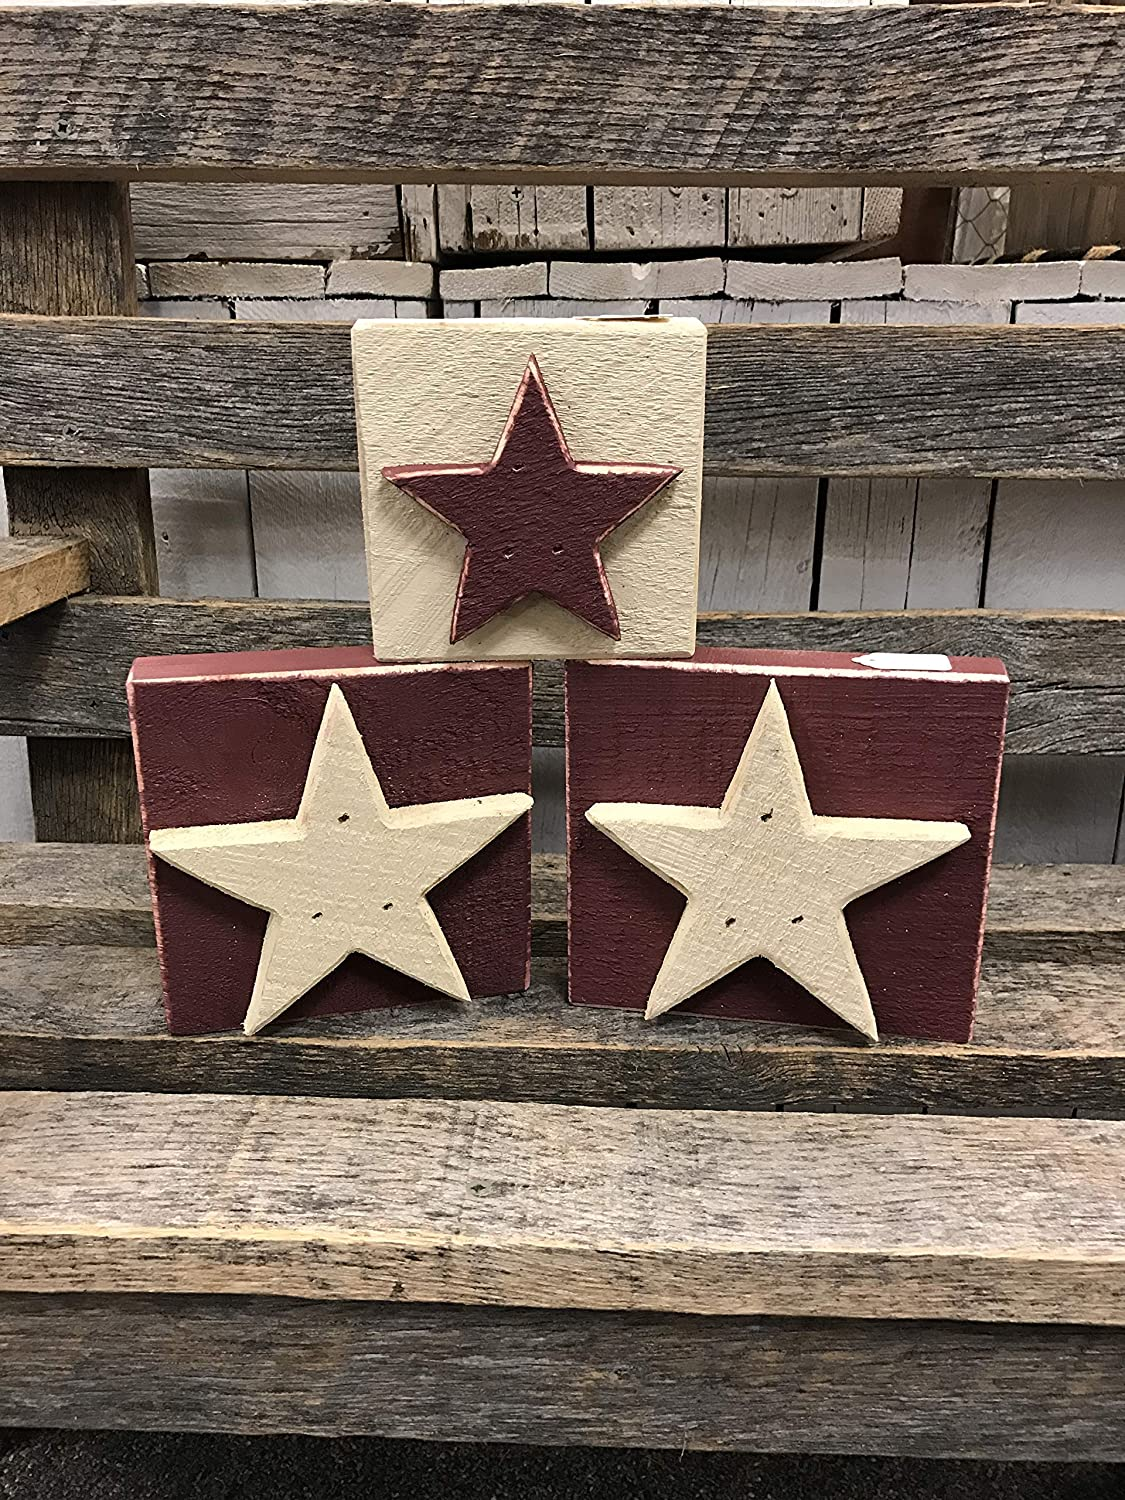 Amazon Com Star Wood Blocks Set Of Three Farmhouse Primitive Americana Country Rustic Home Decor Tabletop Shelf Ornament July 4 Patriotic Stars And Stripes Size 3 1 2 X 3 1 2 Handmade